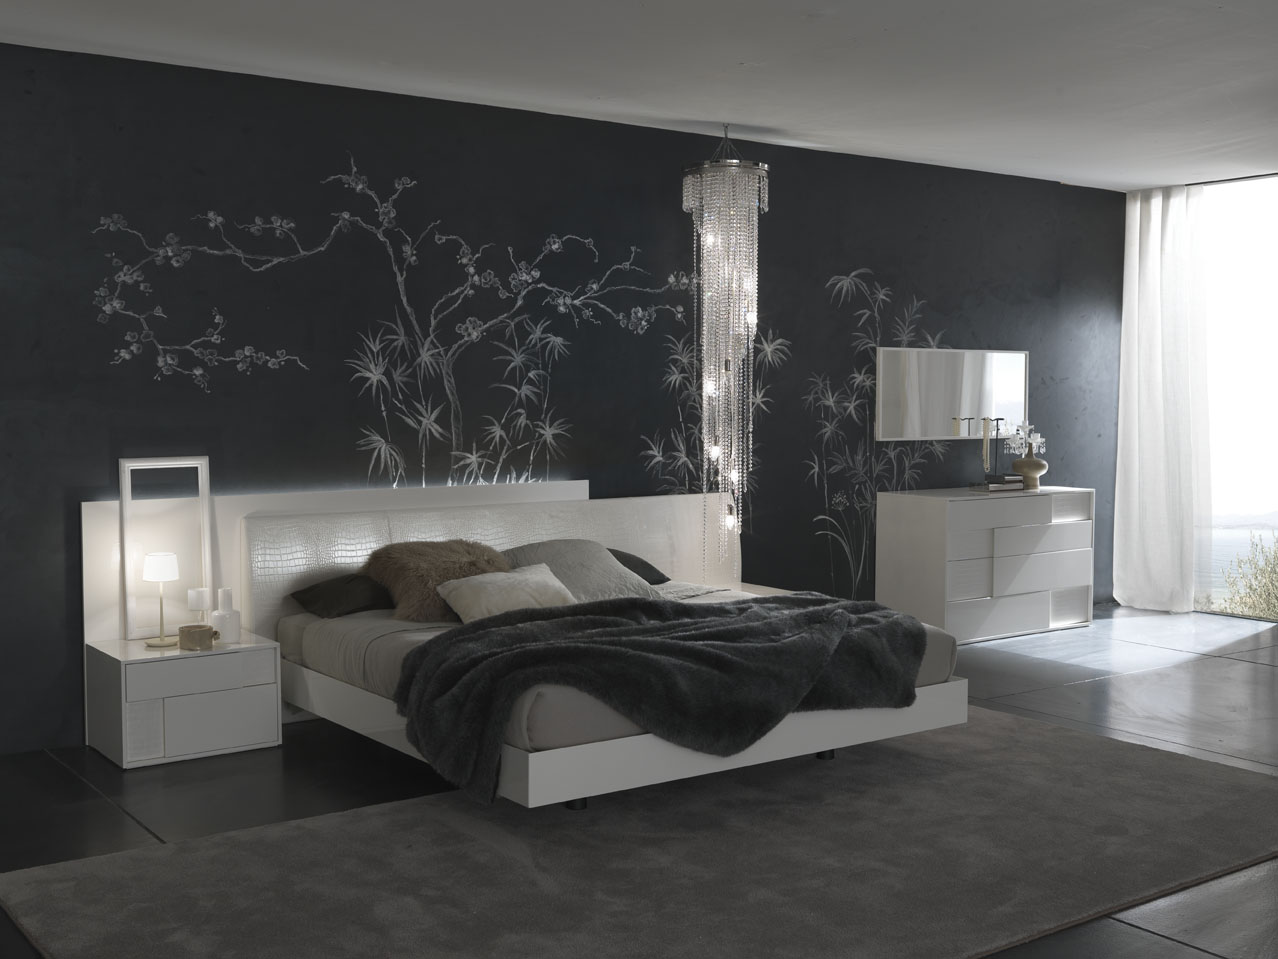 bedroom-makeover-modern-perfect-bedroom-decorating-ideas-